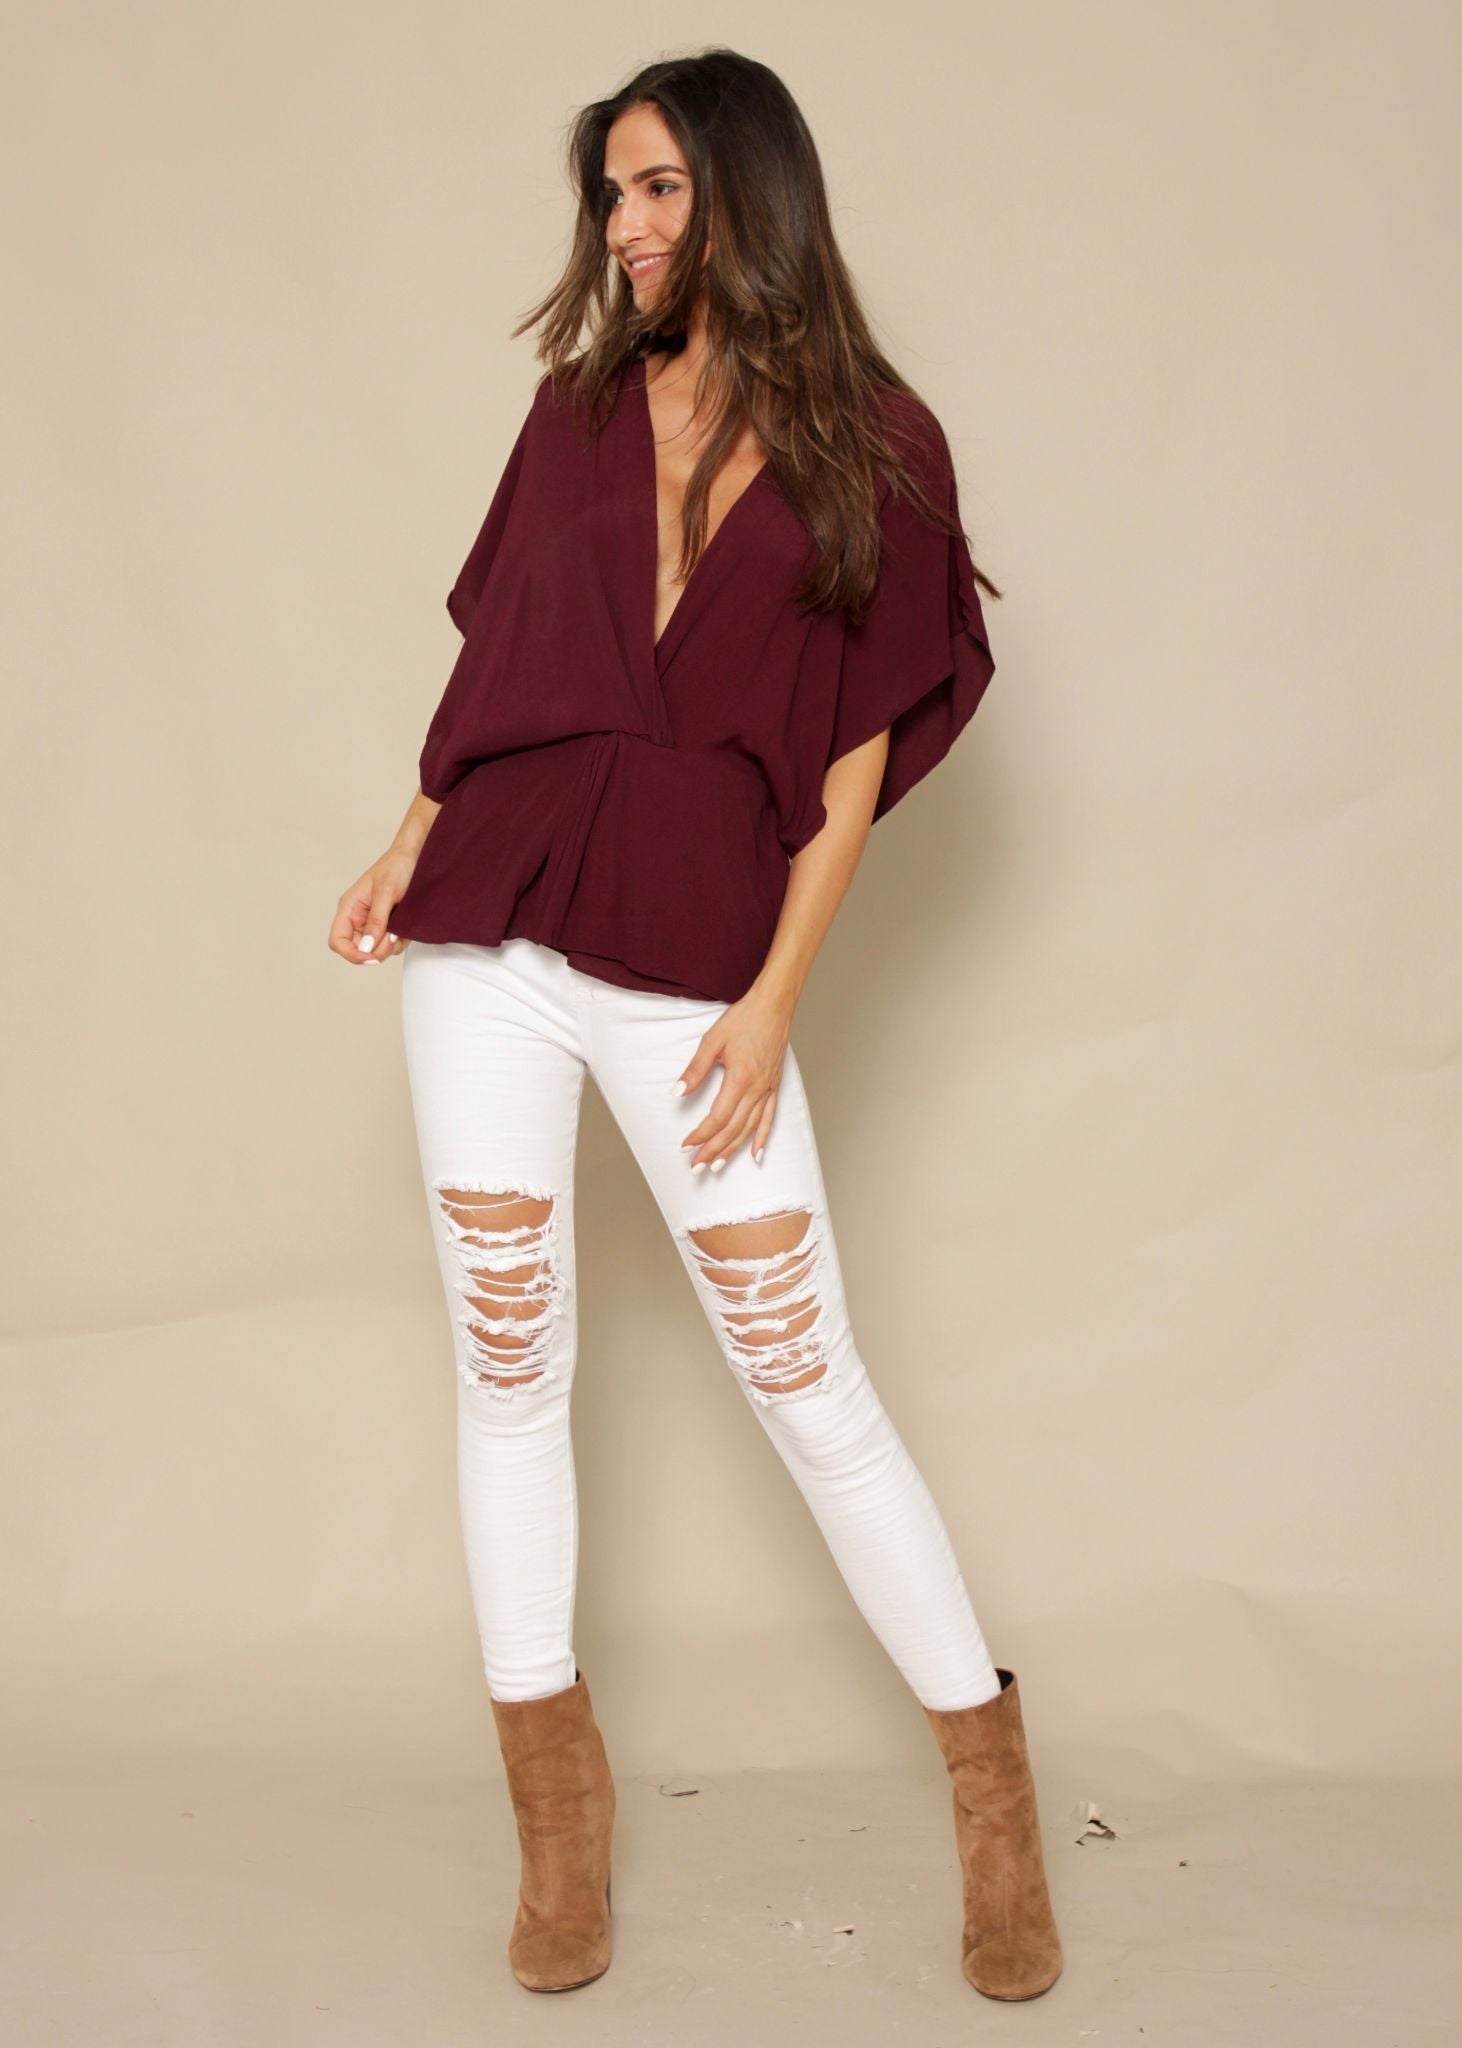 Through The Fire Blouse - Burgundy